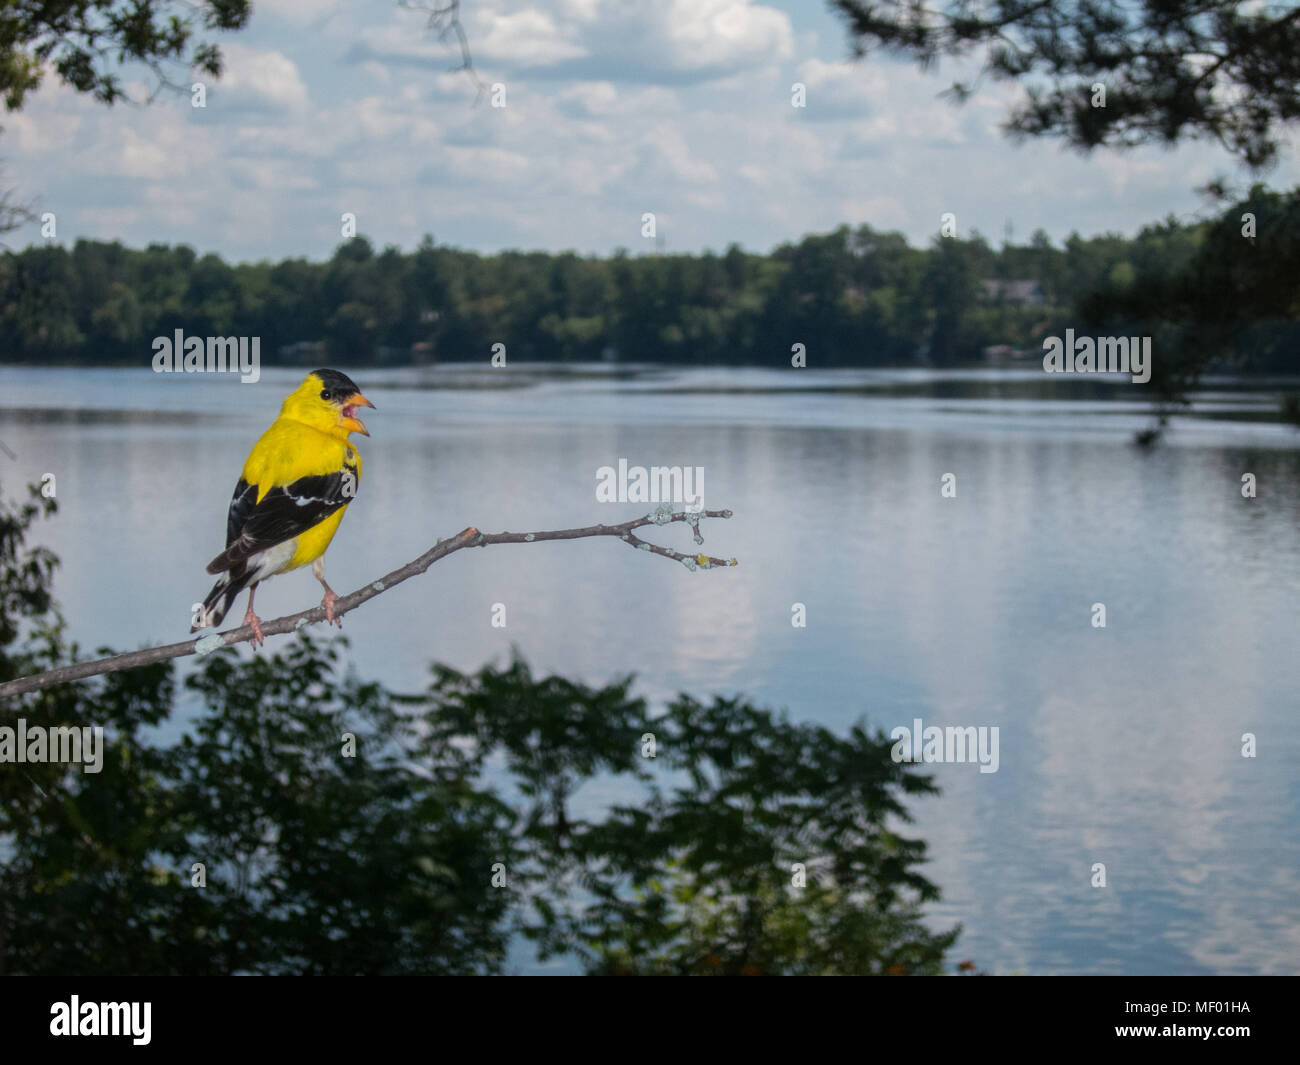 American goldfinch chirping loudly by a lake - Stock Image